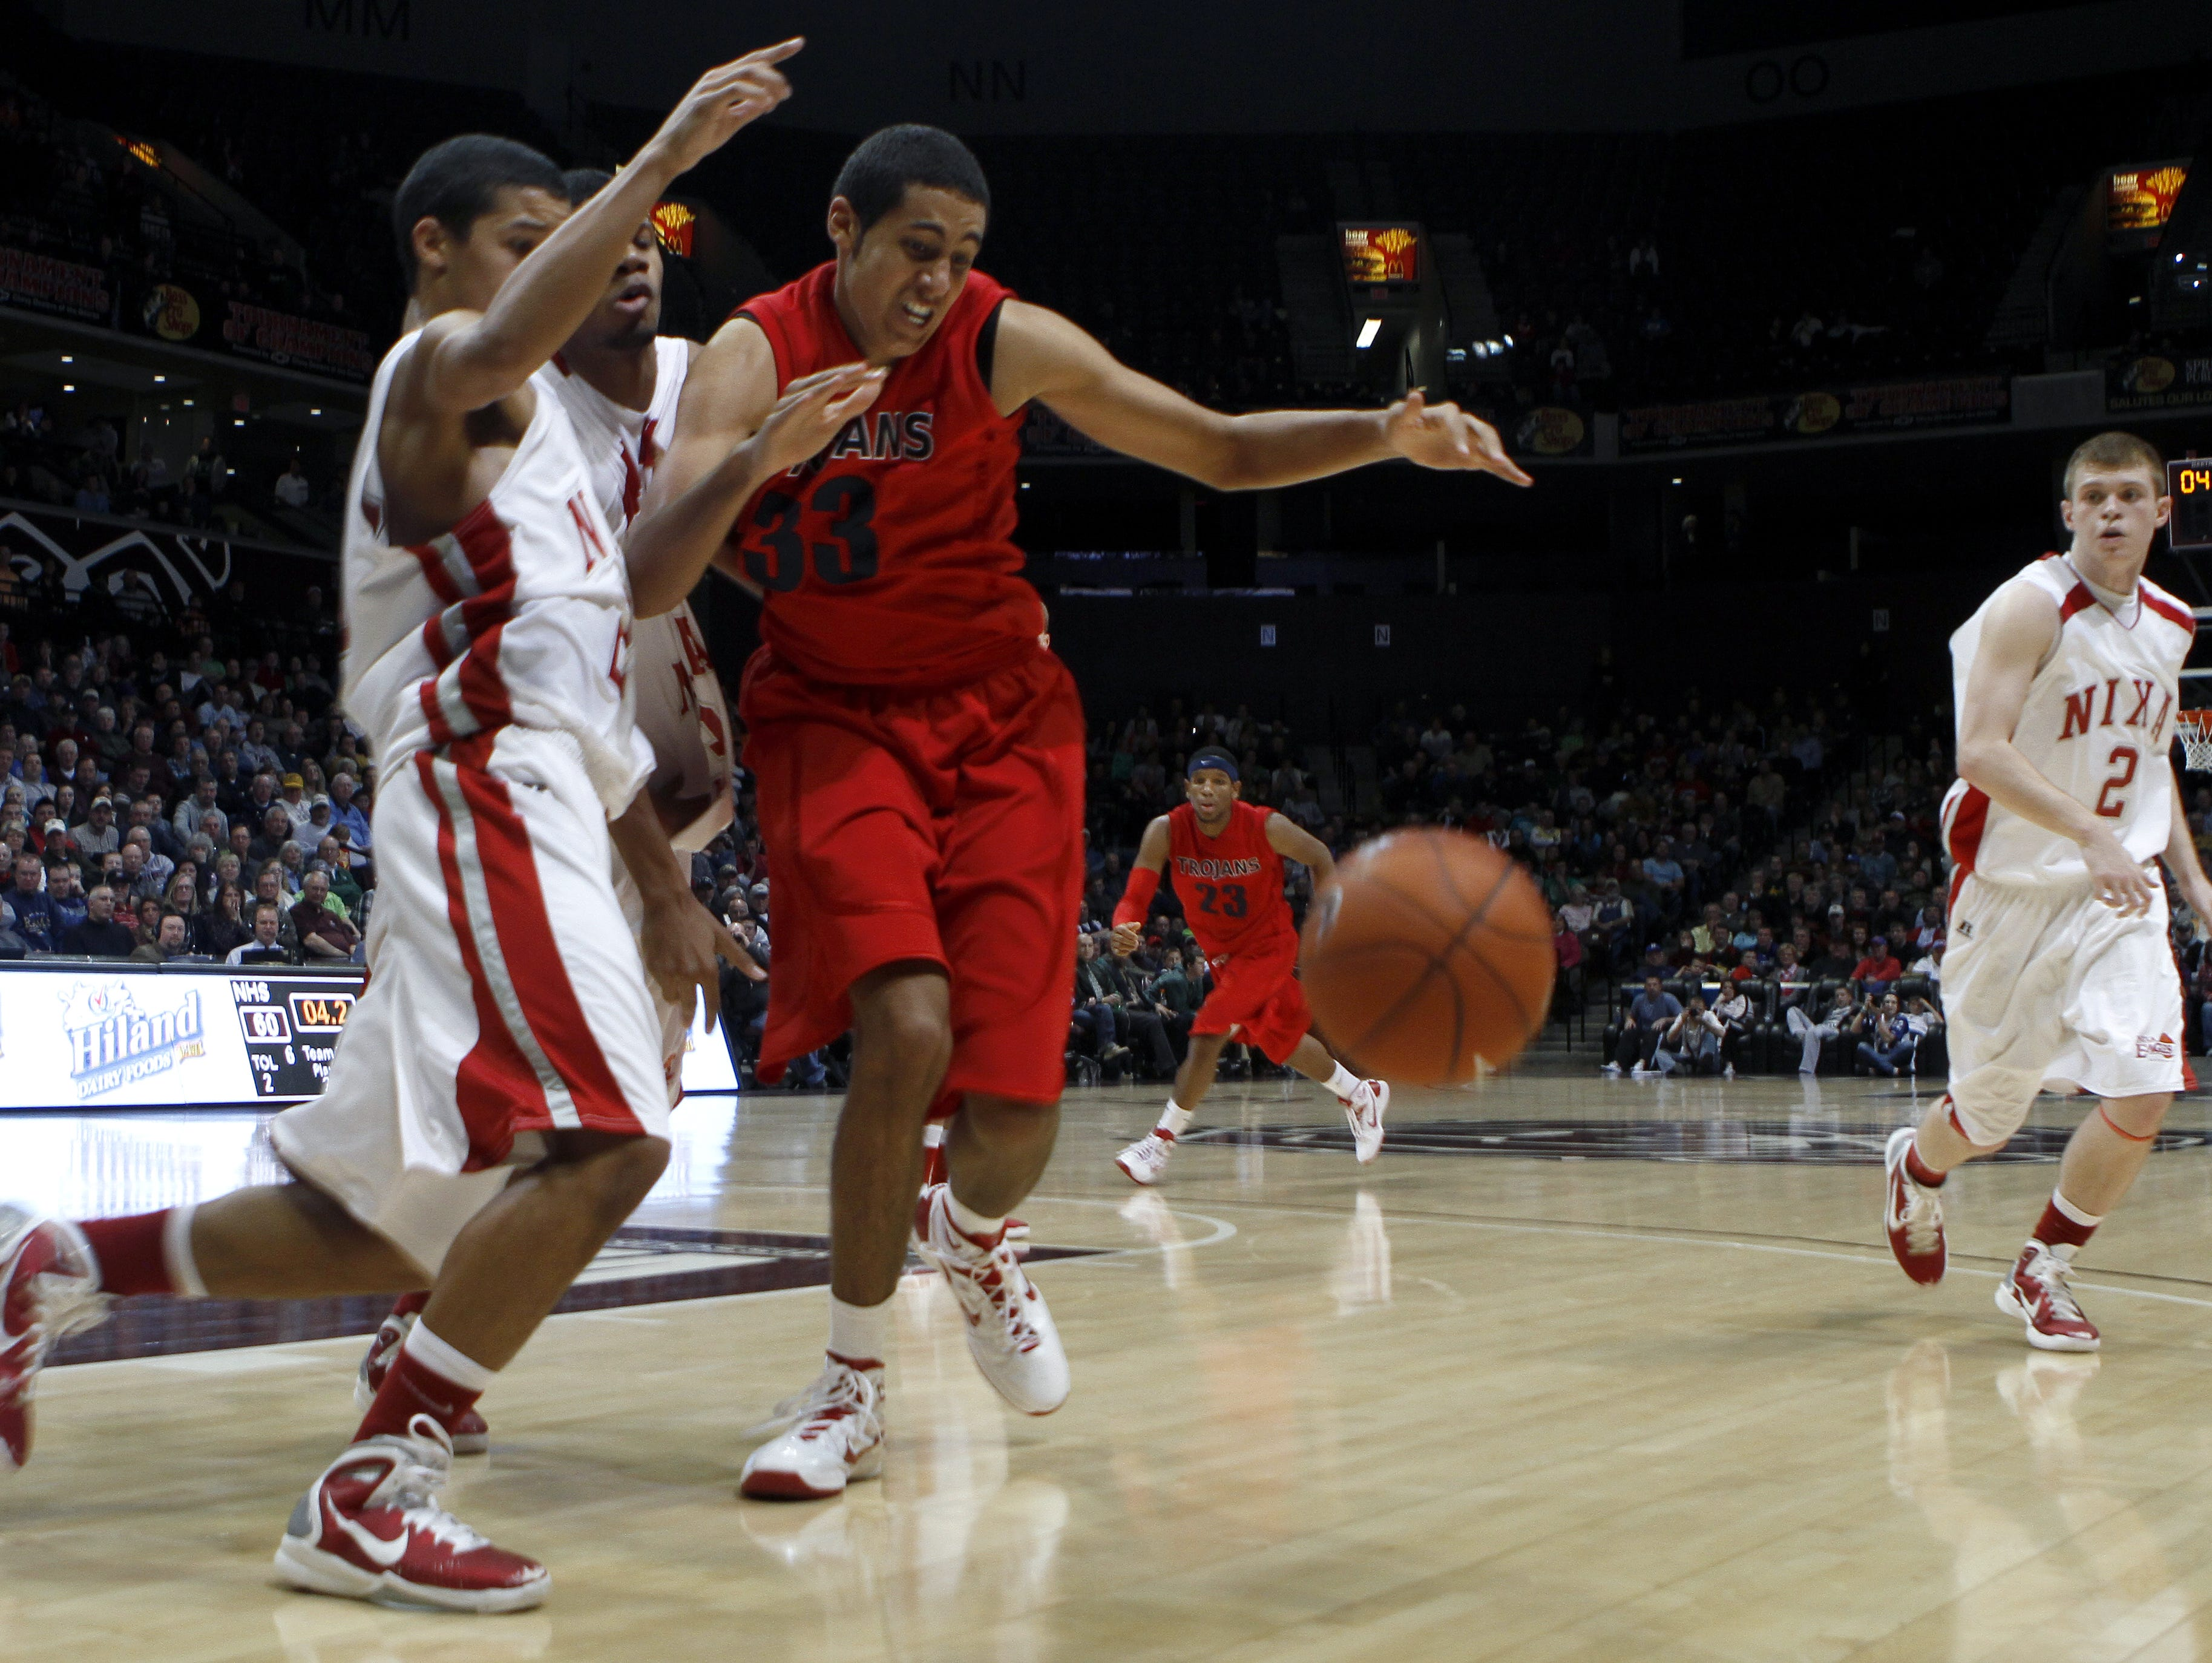 La Verne Lutheran's Grant Jerrett (33) and Nixa's Jalen Norman (center) and Kameron Bundy scramble for a loose ball with 4.2 seconds left in a game during the 2011 Bass Pro Tournament of Champions at JQH Arena.